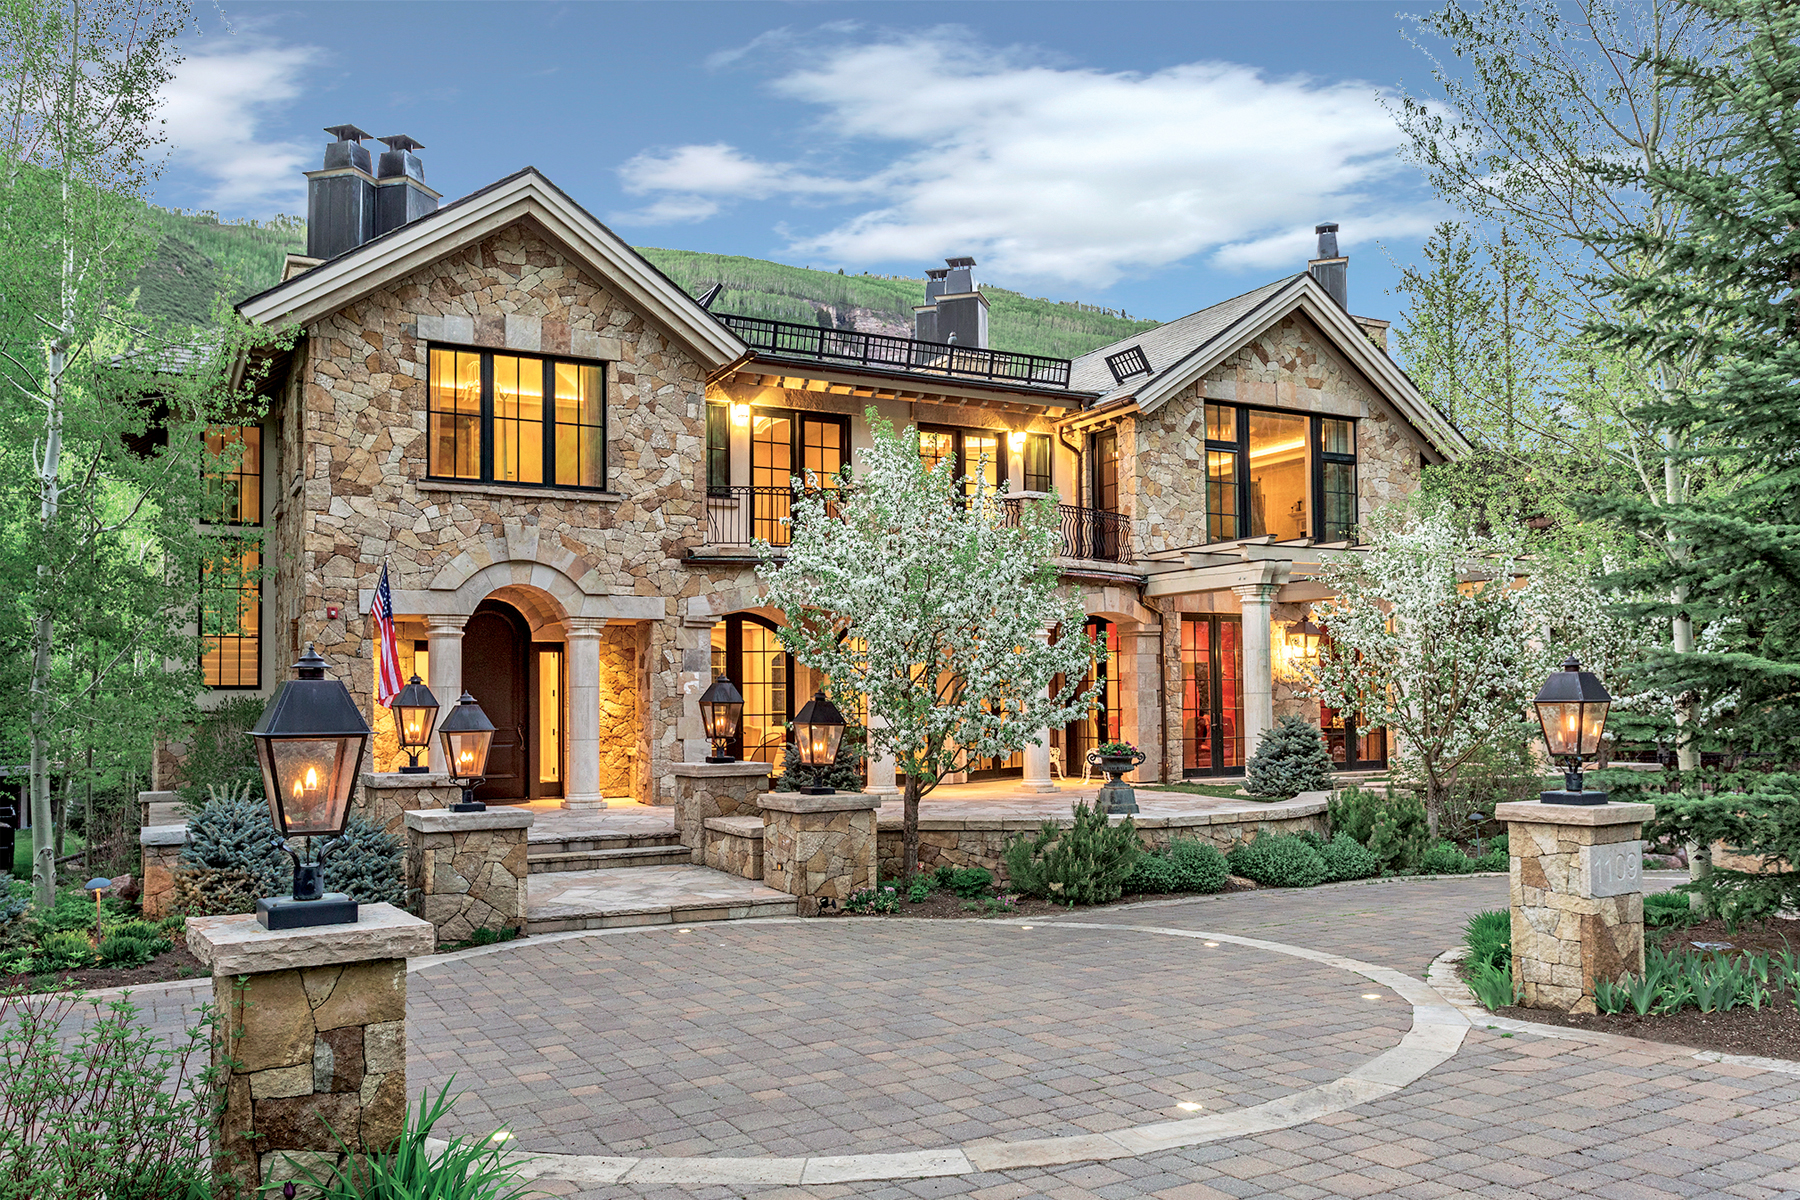 Property for Active at Stately Elegance in Vail Village 1109 Vail Valley Dr. Vail, Colorado 81657 United States